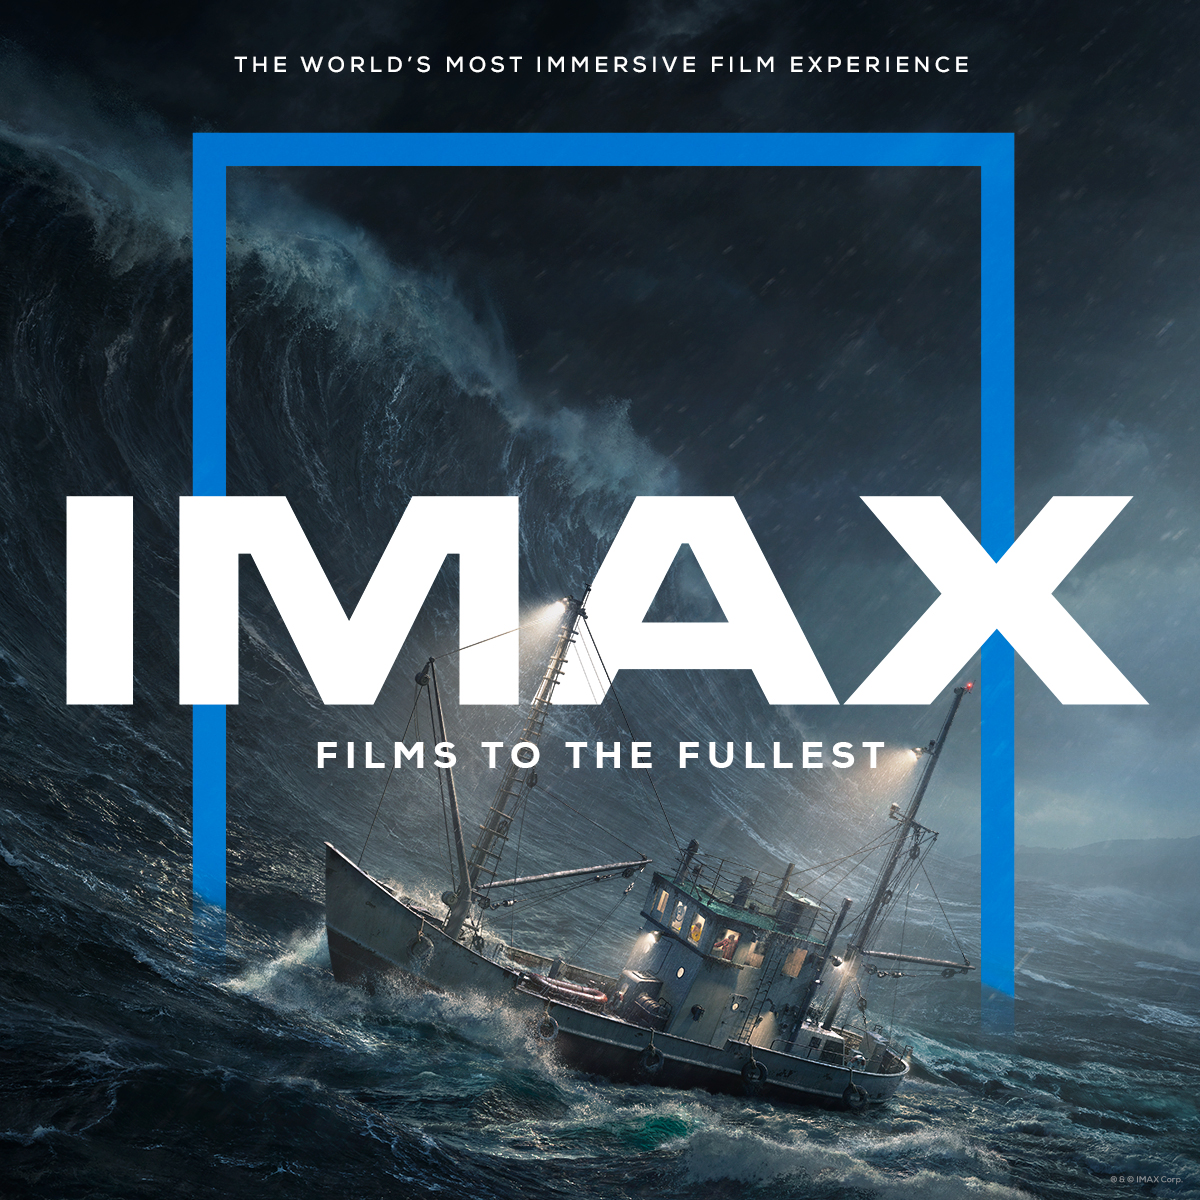 The IMAX Experience?